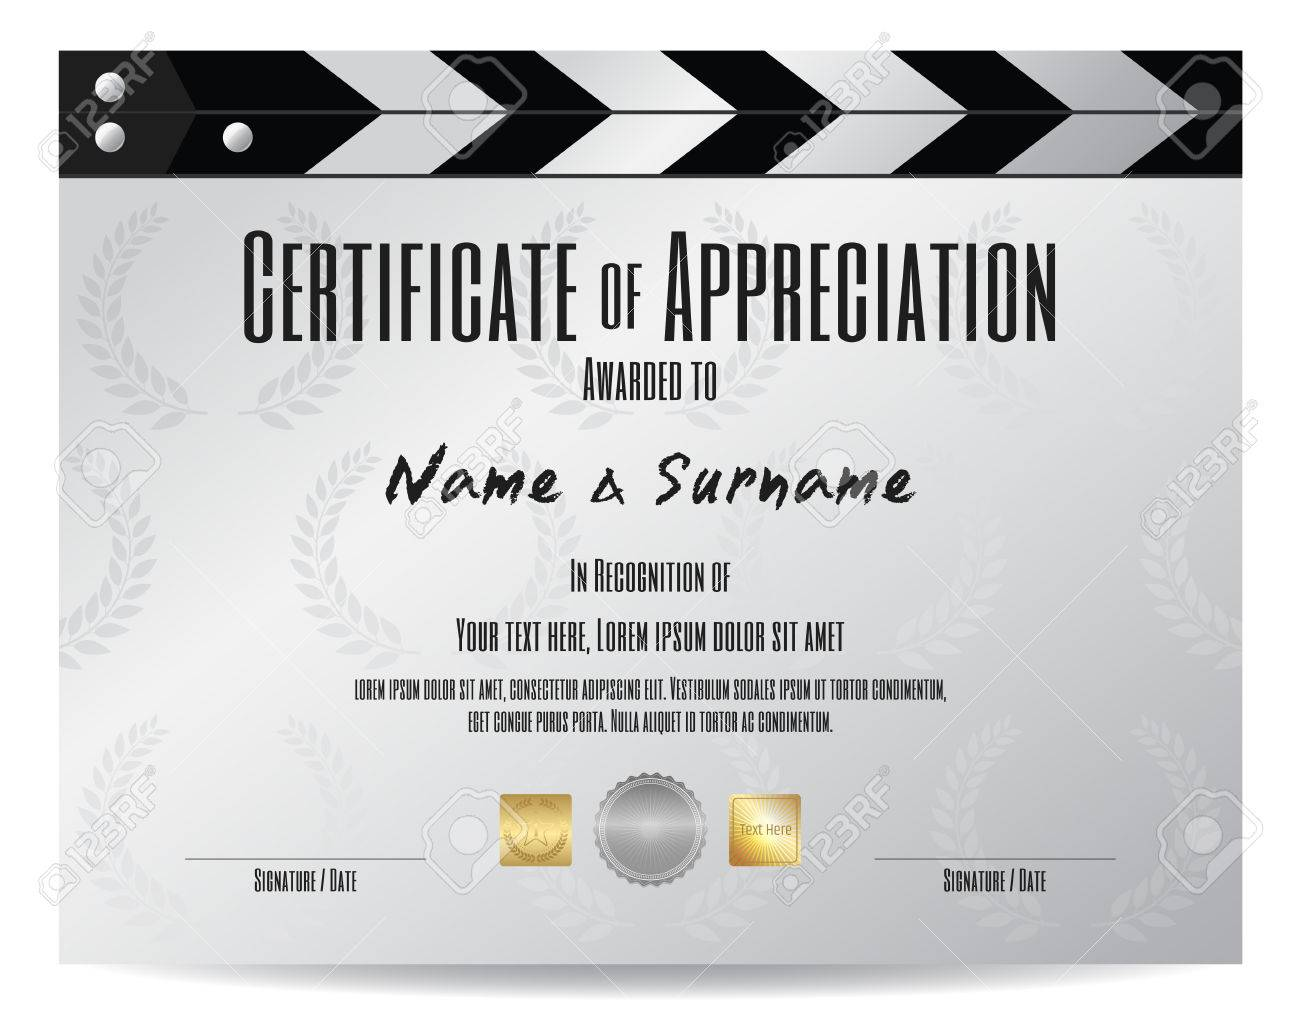 Certificate of appreciation with movie film slate in silver tone certificate of appreciation with movie film slate in silver tone theme stock vector 69934082 yadclub Image collections